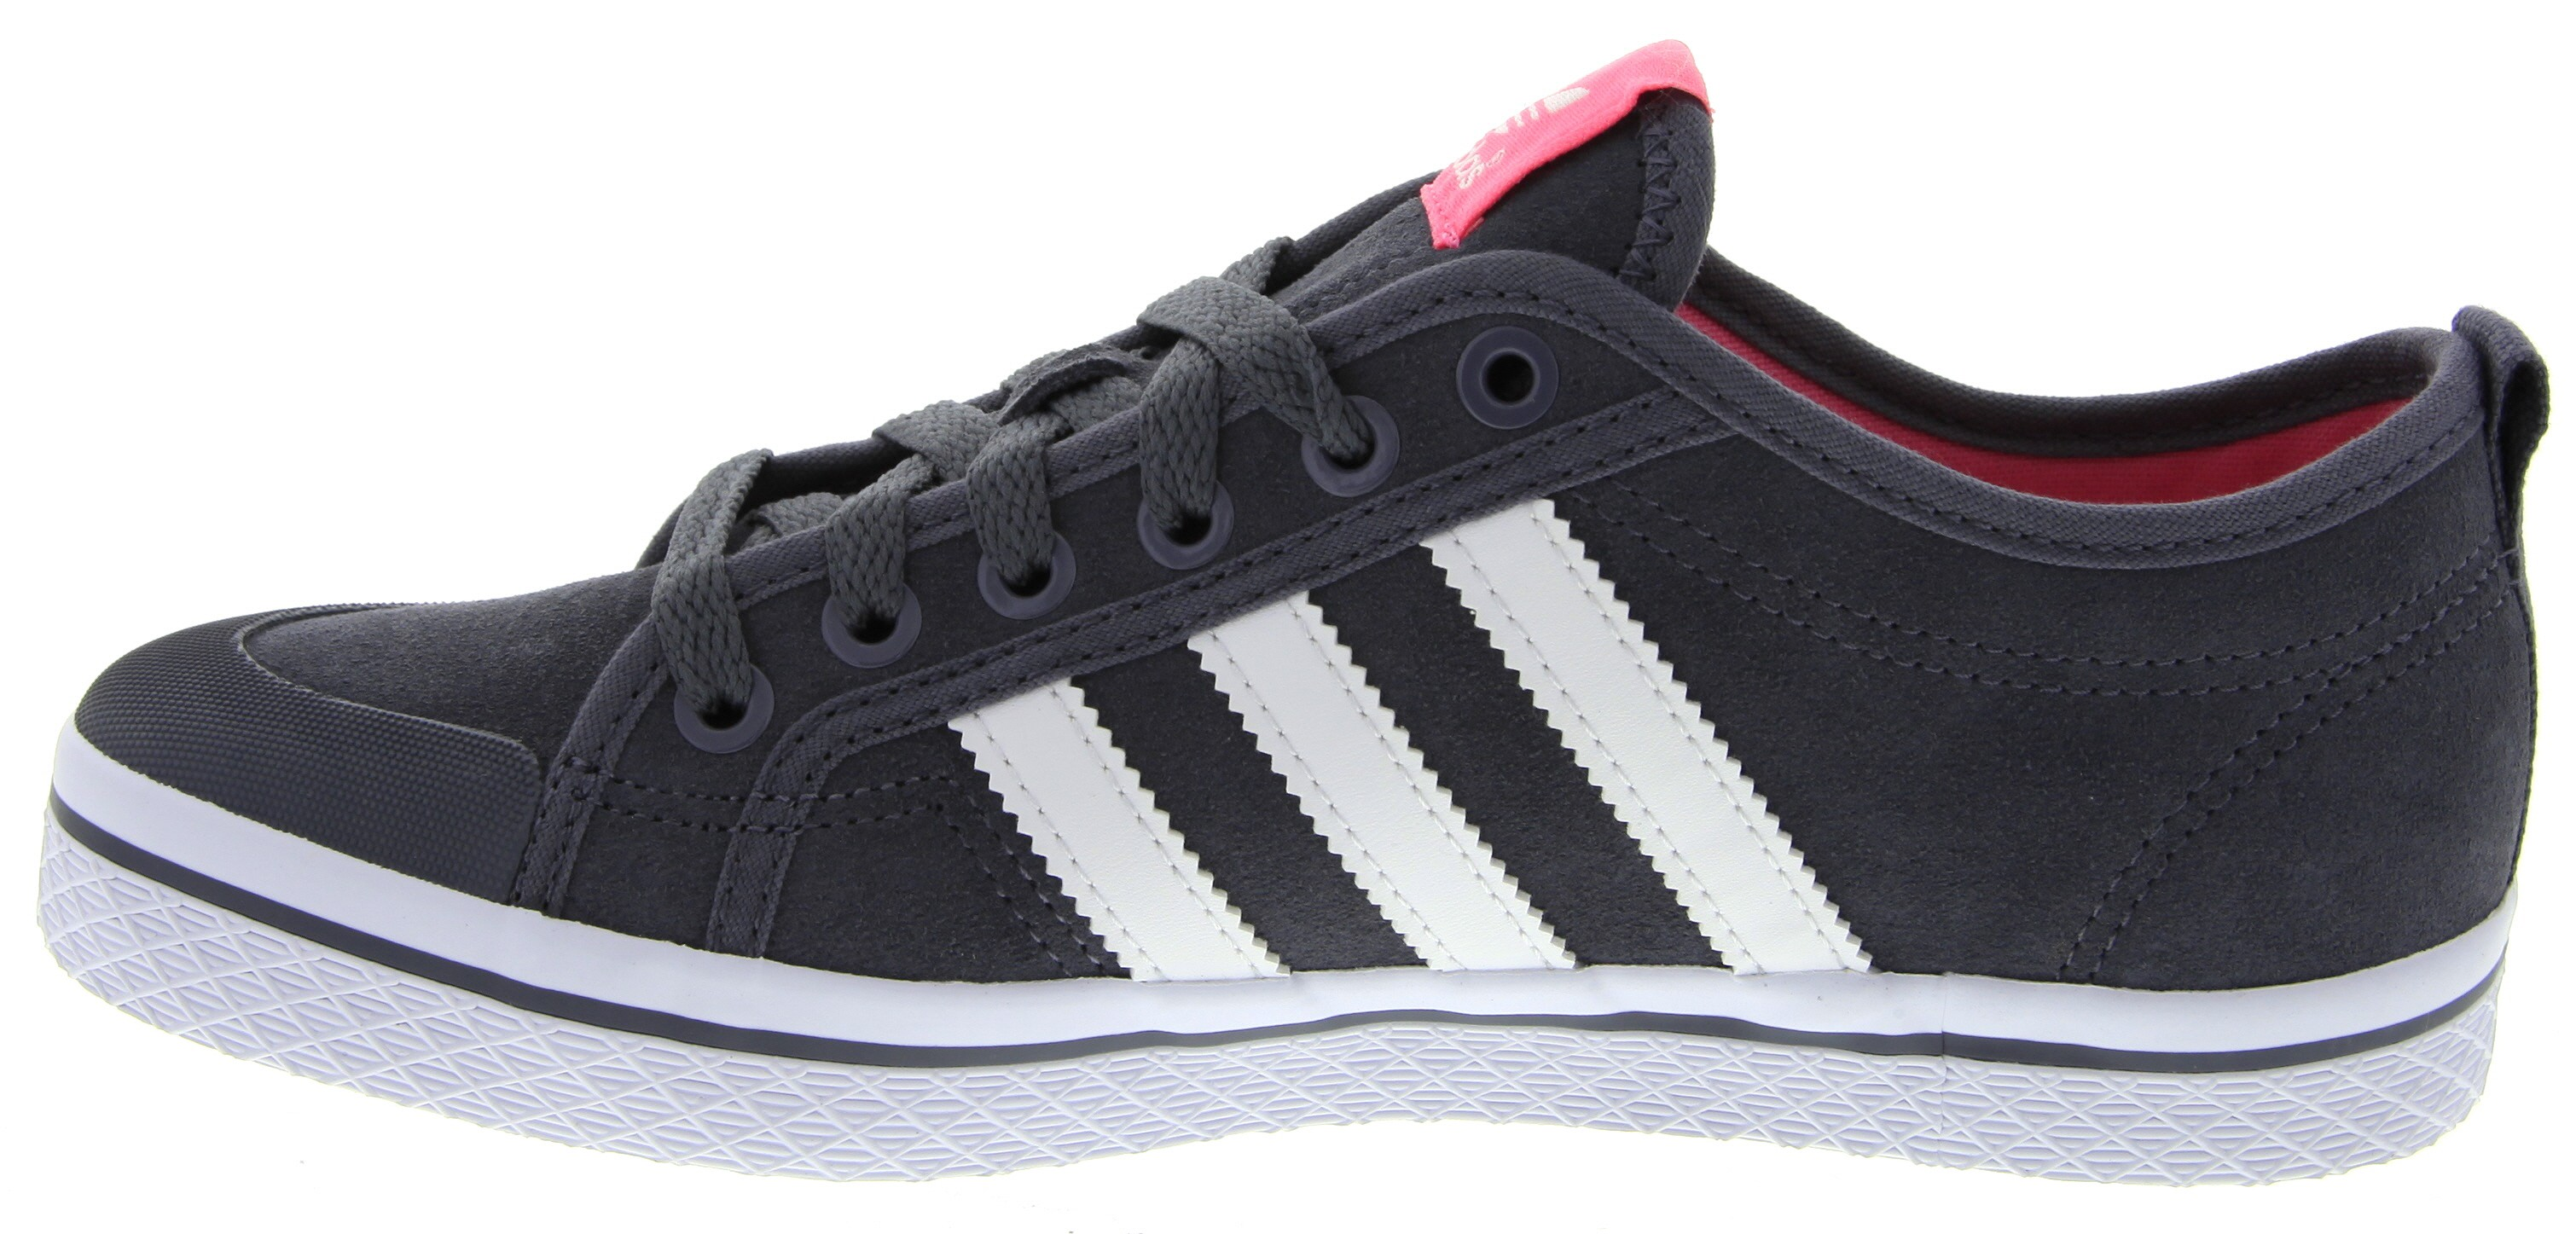 adidas honey ... honey stripes low casual shoes in grey ... ICLULKC